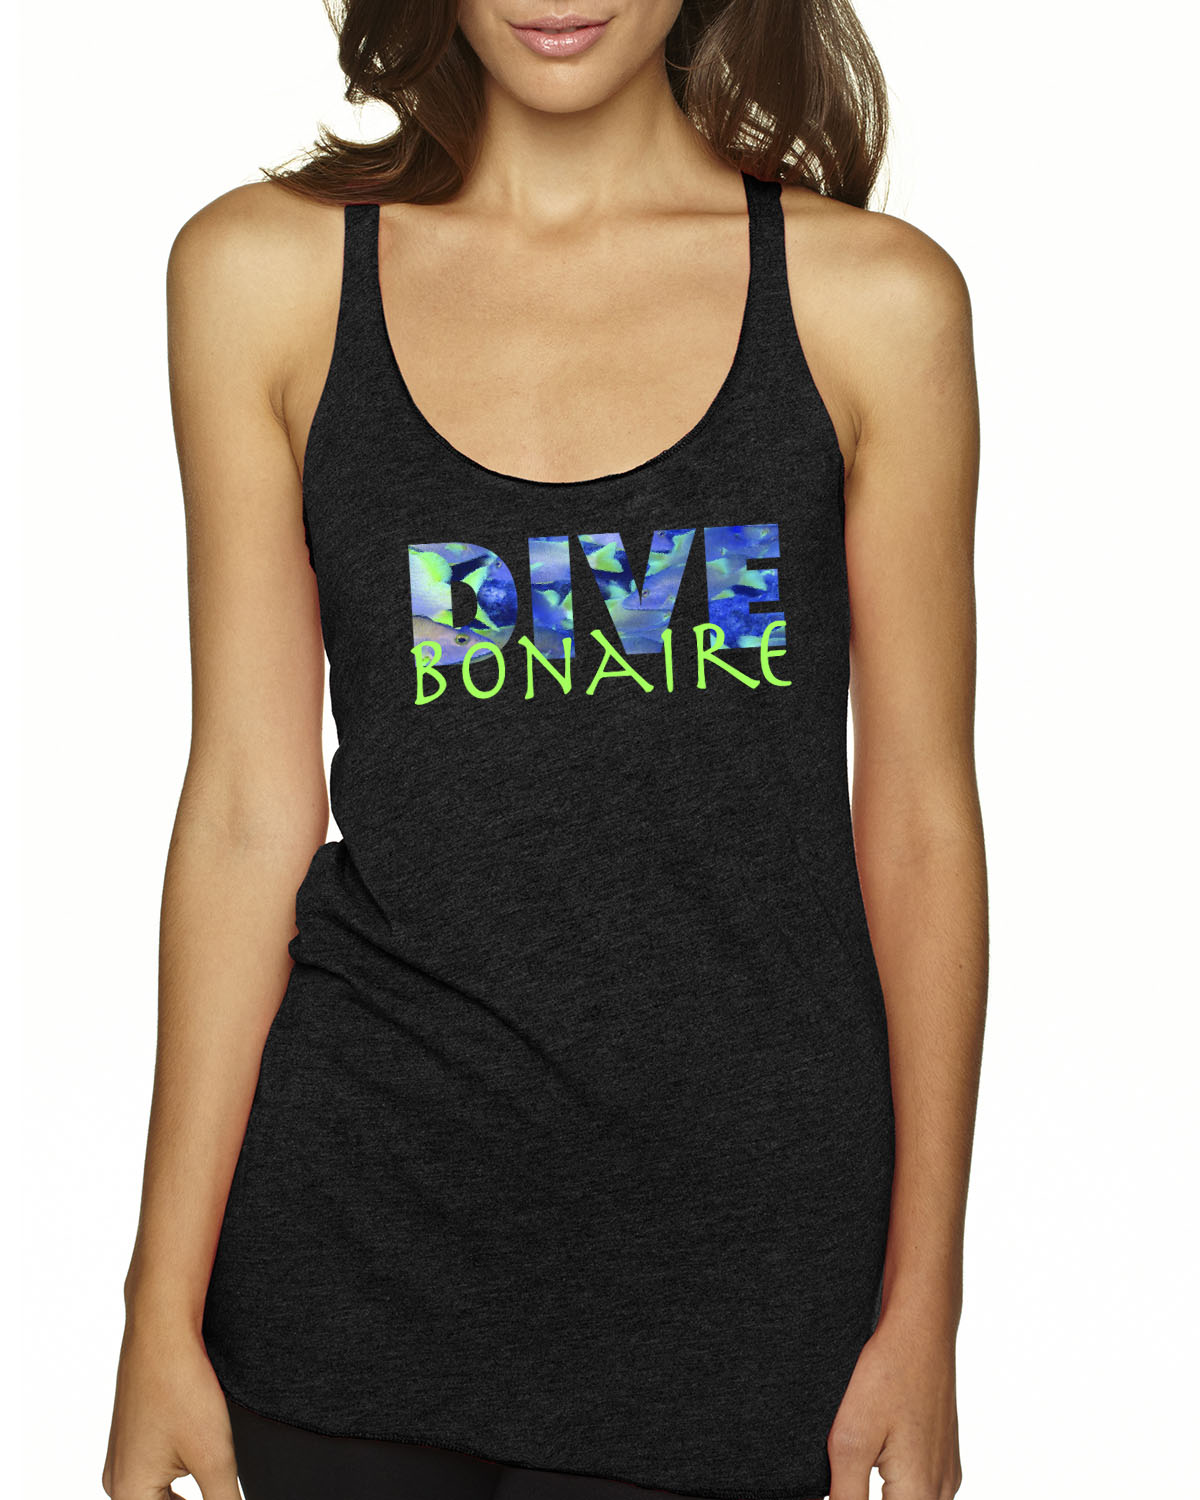 Racer-Back DIVE Bonaire Tank Top (Vintage Black)